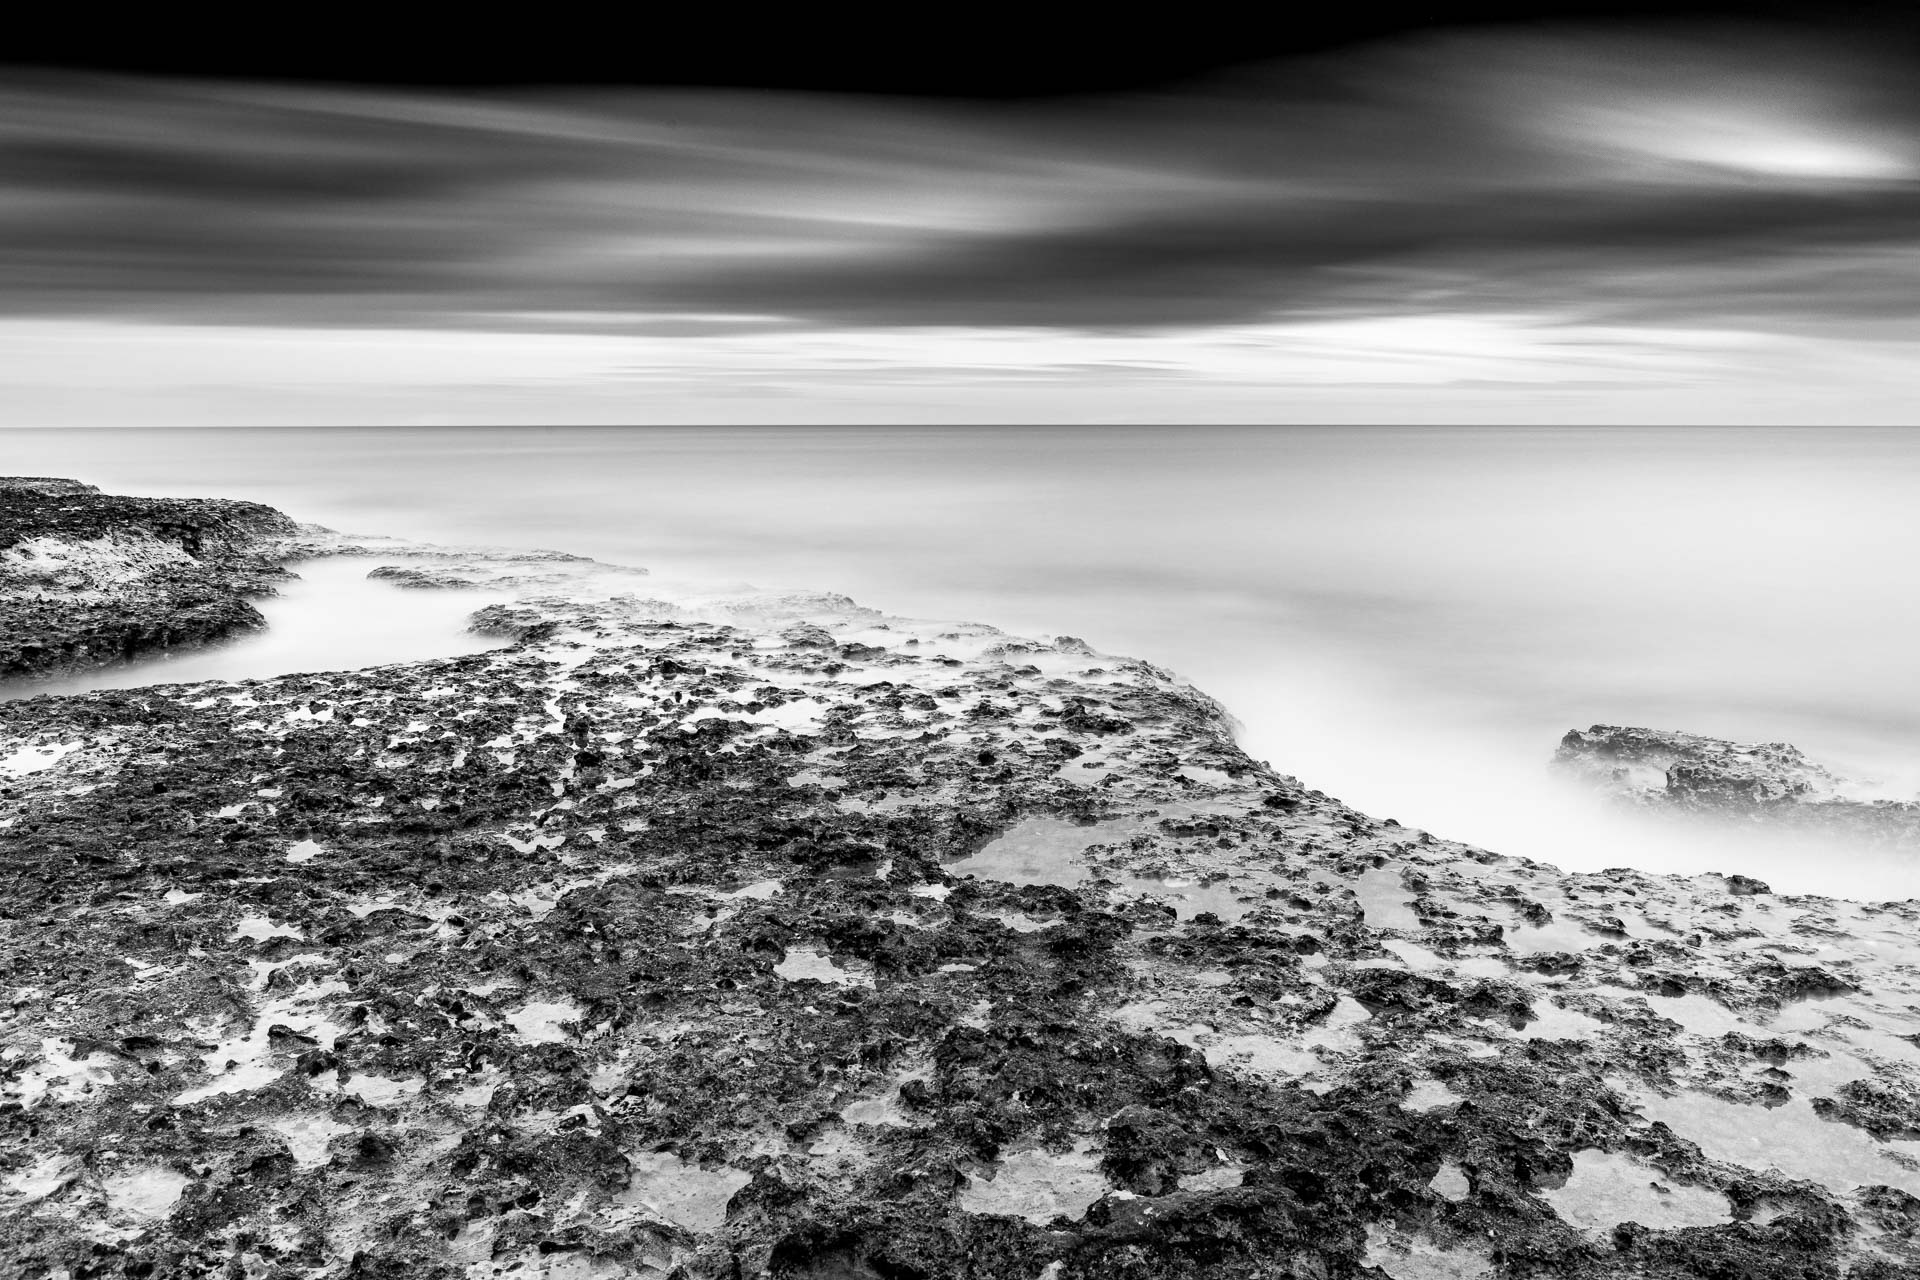 Seascape in sunset, black and white long exposure photography